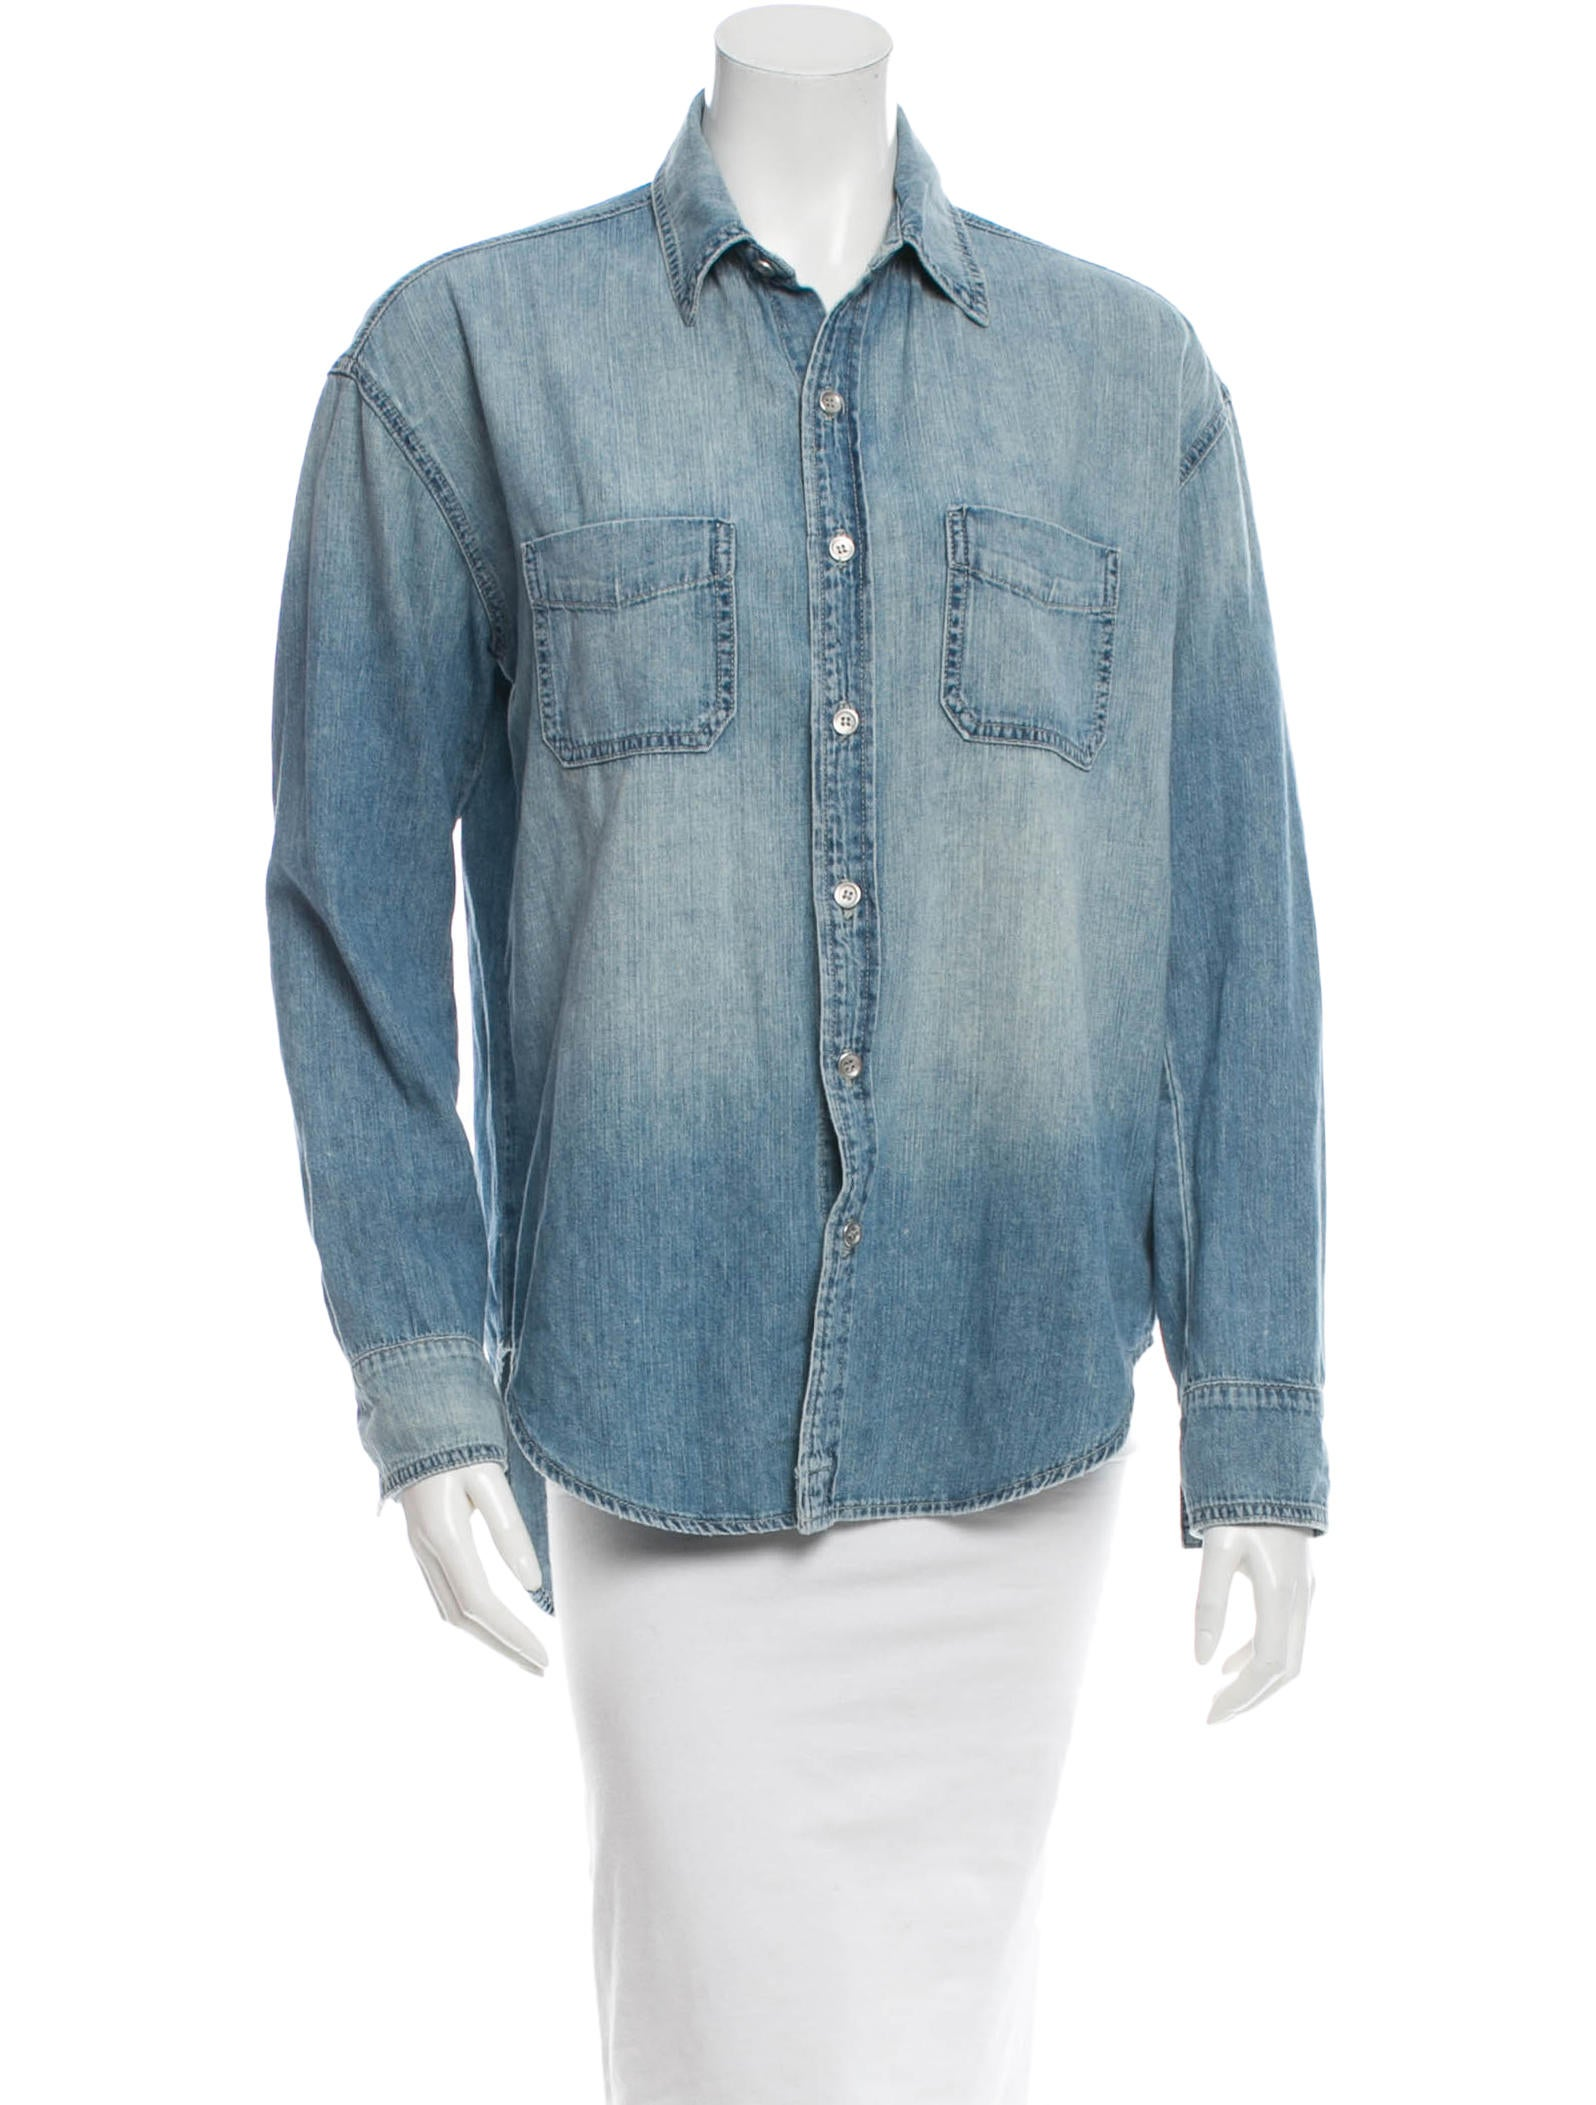 J brand chambray button up top tops wjb24783 the for Chambray top